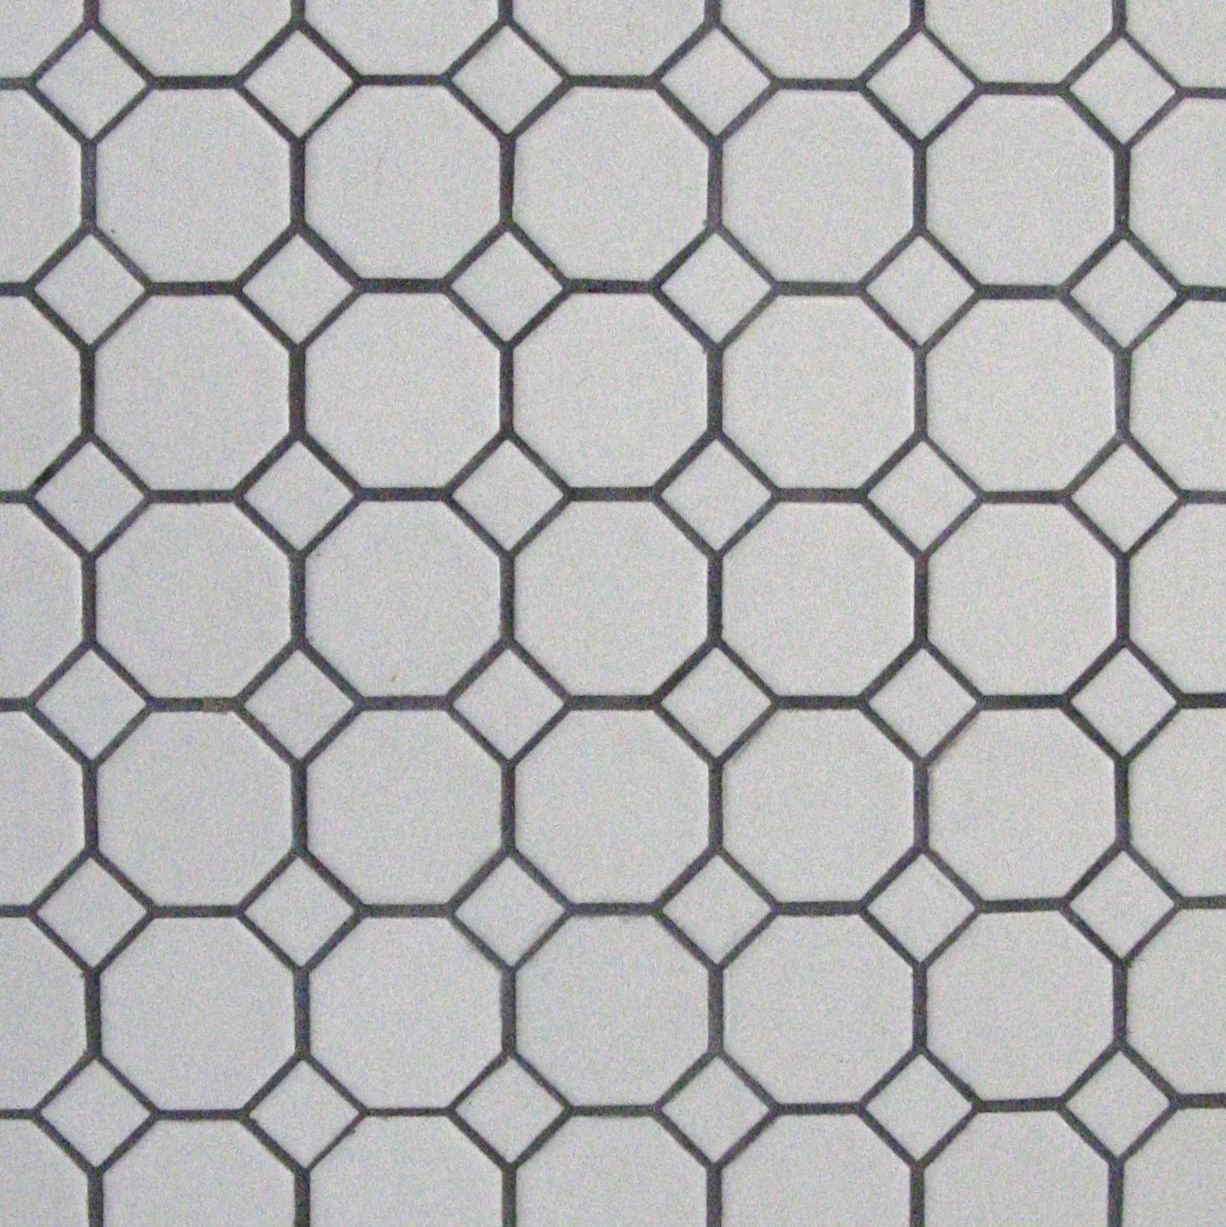 We Chose Simple Black And White Hexagon Tile Floors For